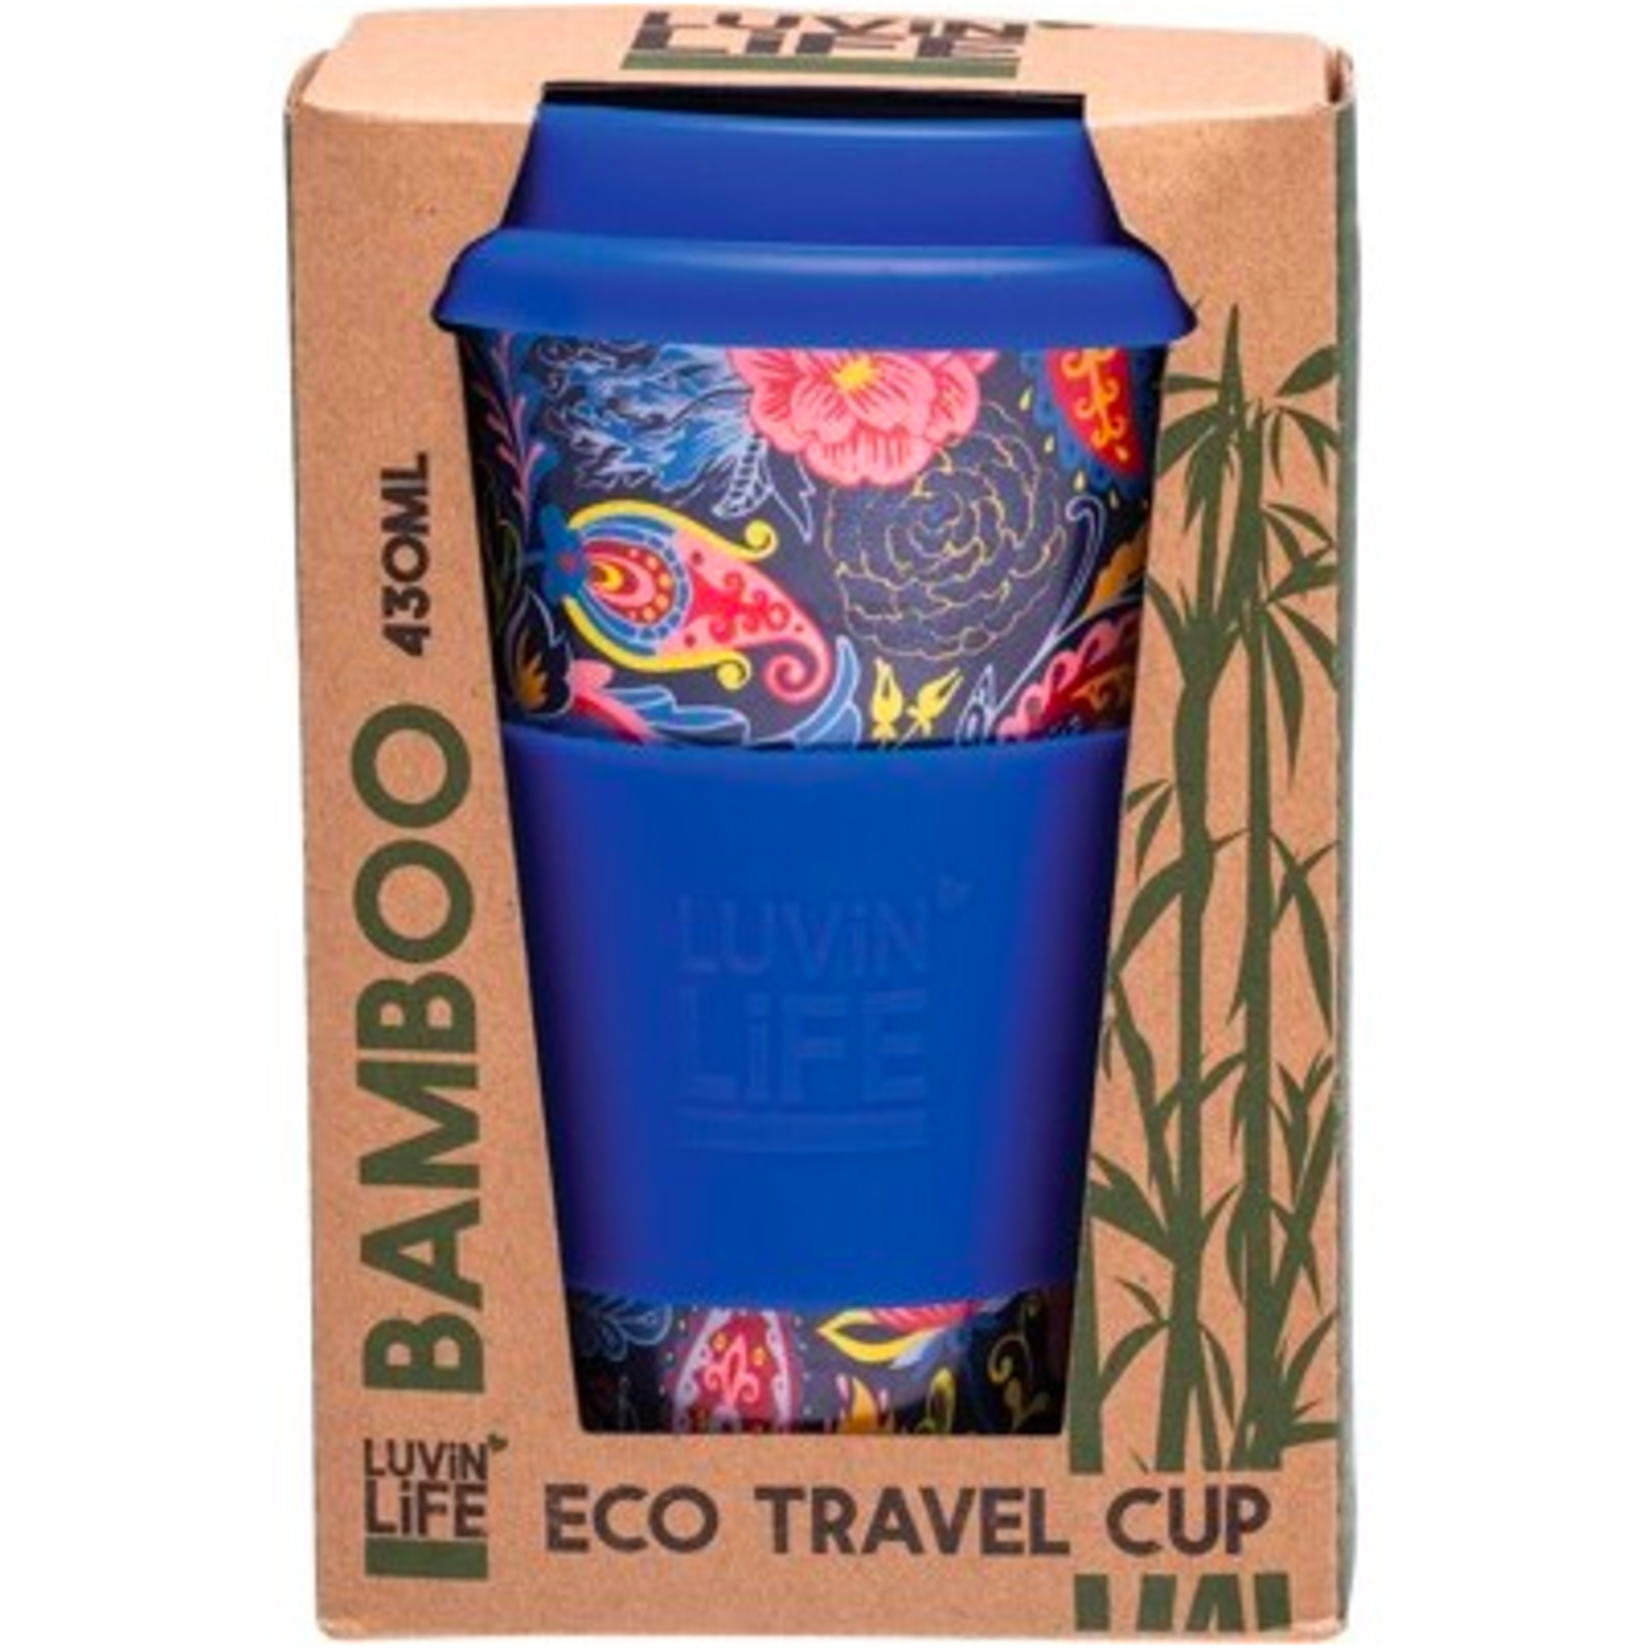 Luvin Life Luvin Life Travel Cup